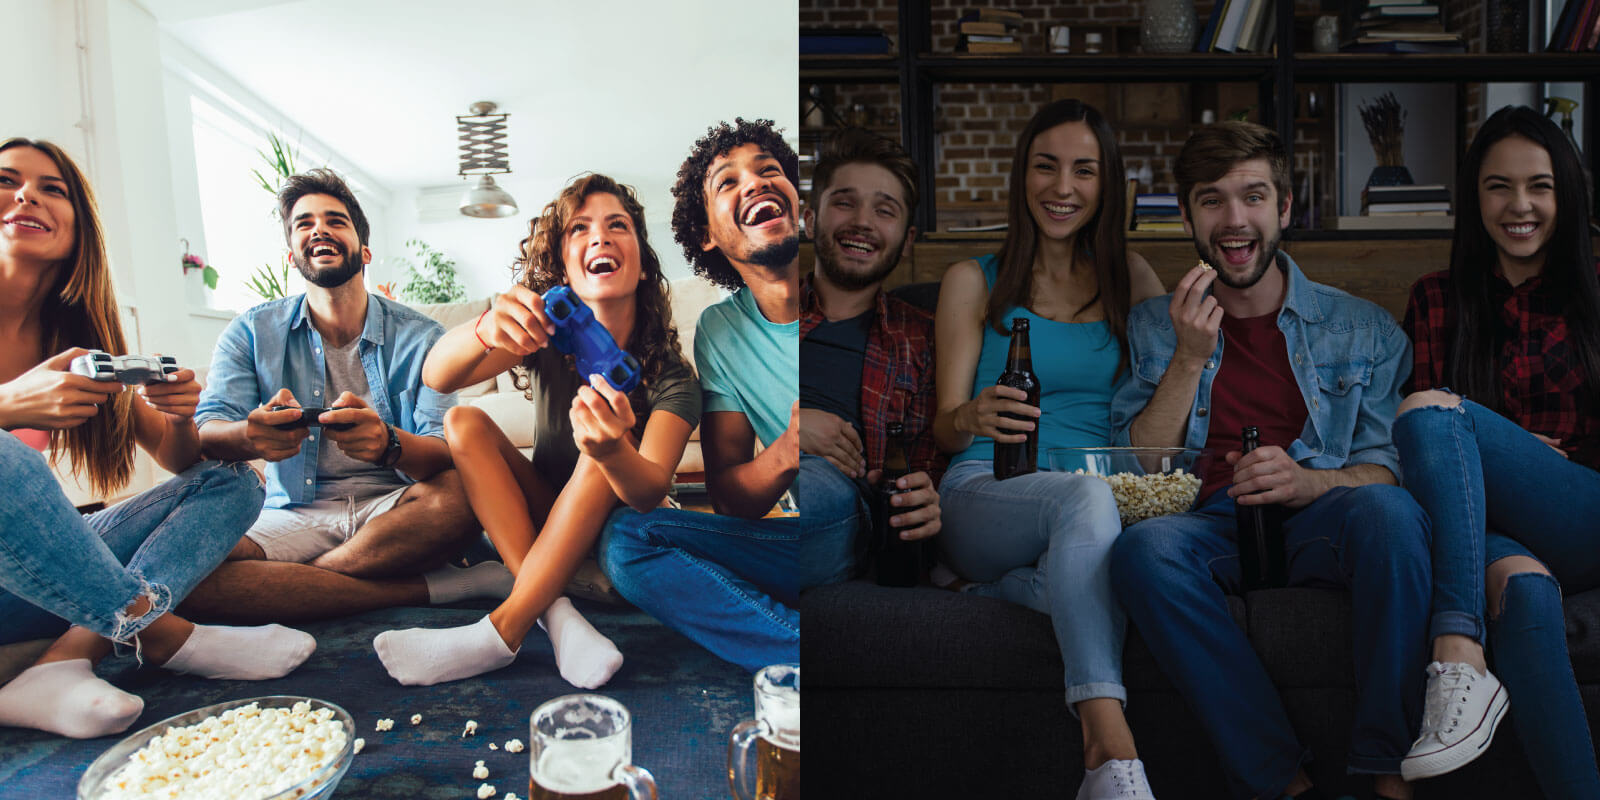 a comparison picture between day time party and movie night gathering